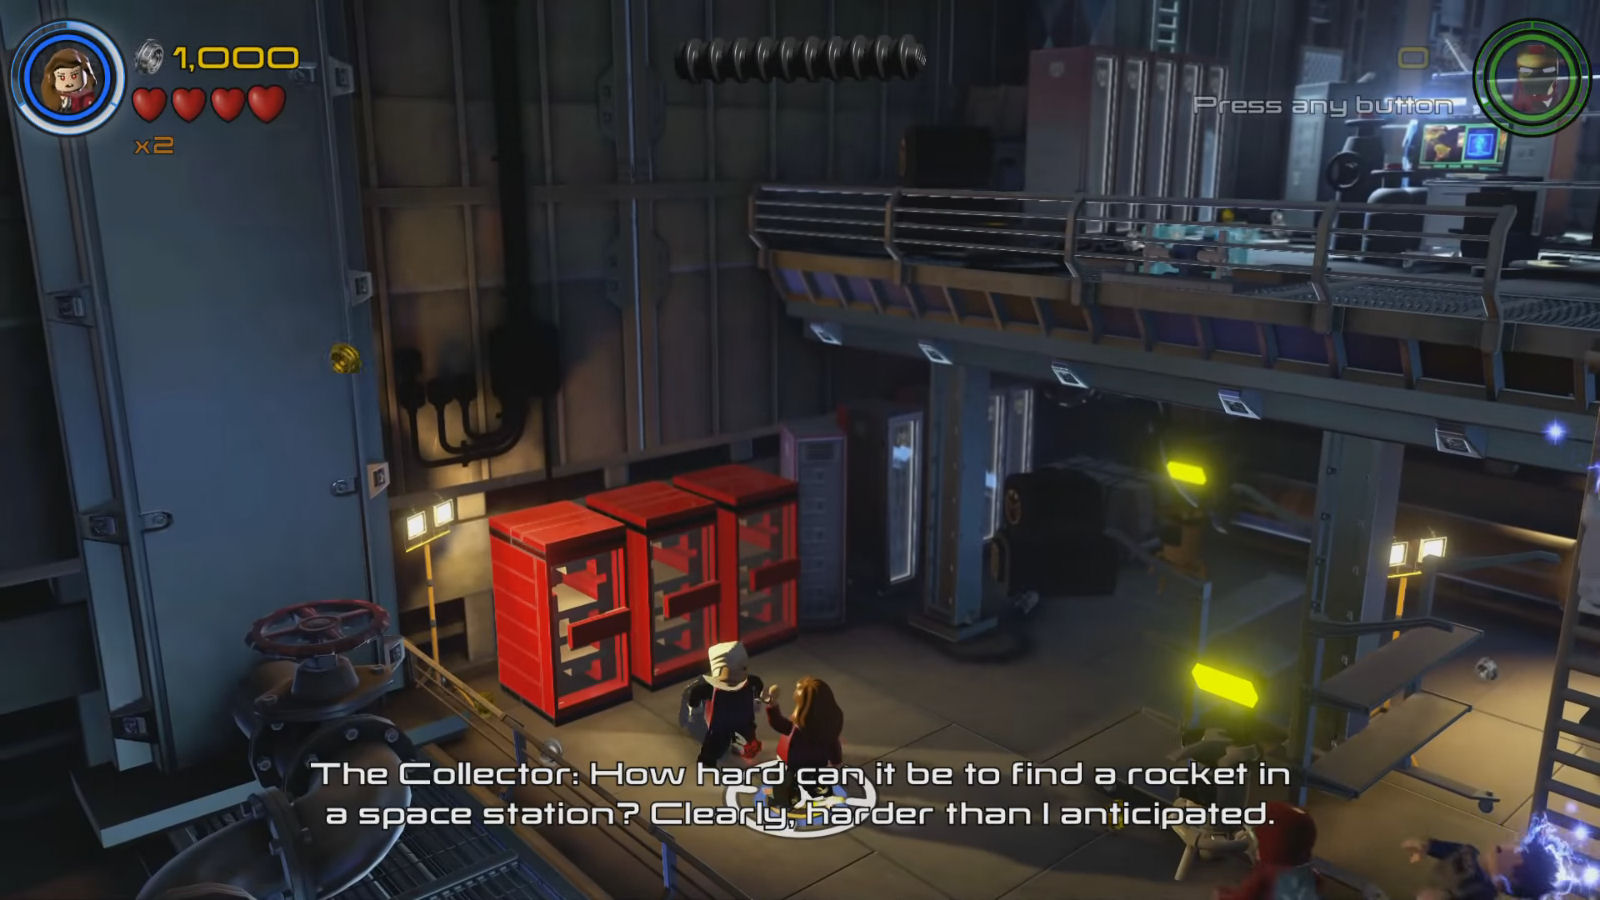 Lego Marvel's Avengers The Collector Miniature Rocket Location